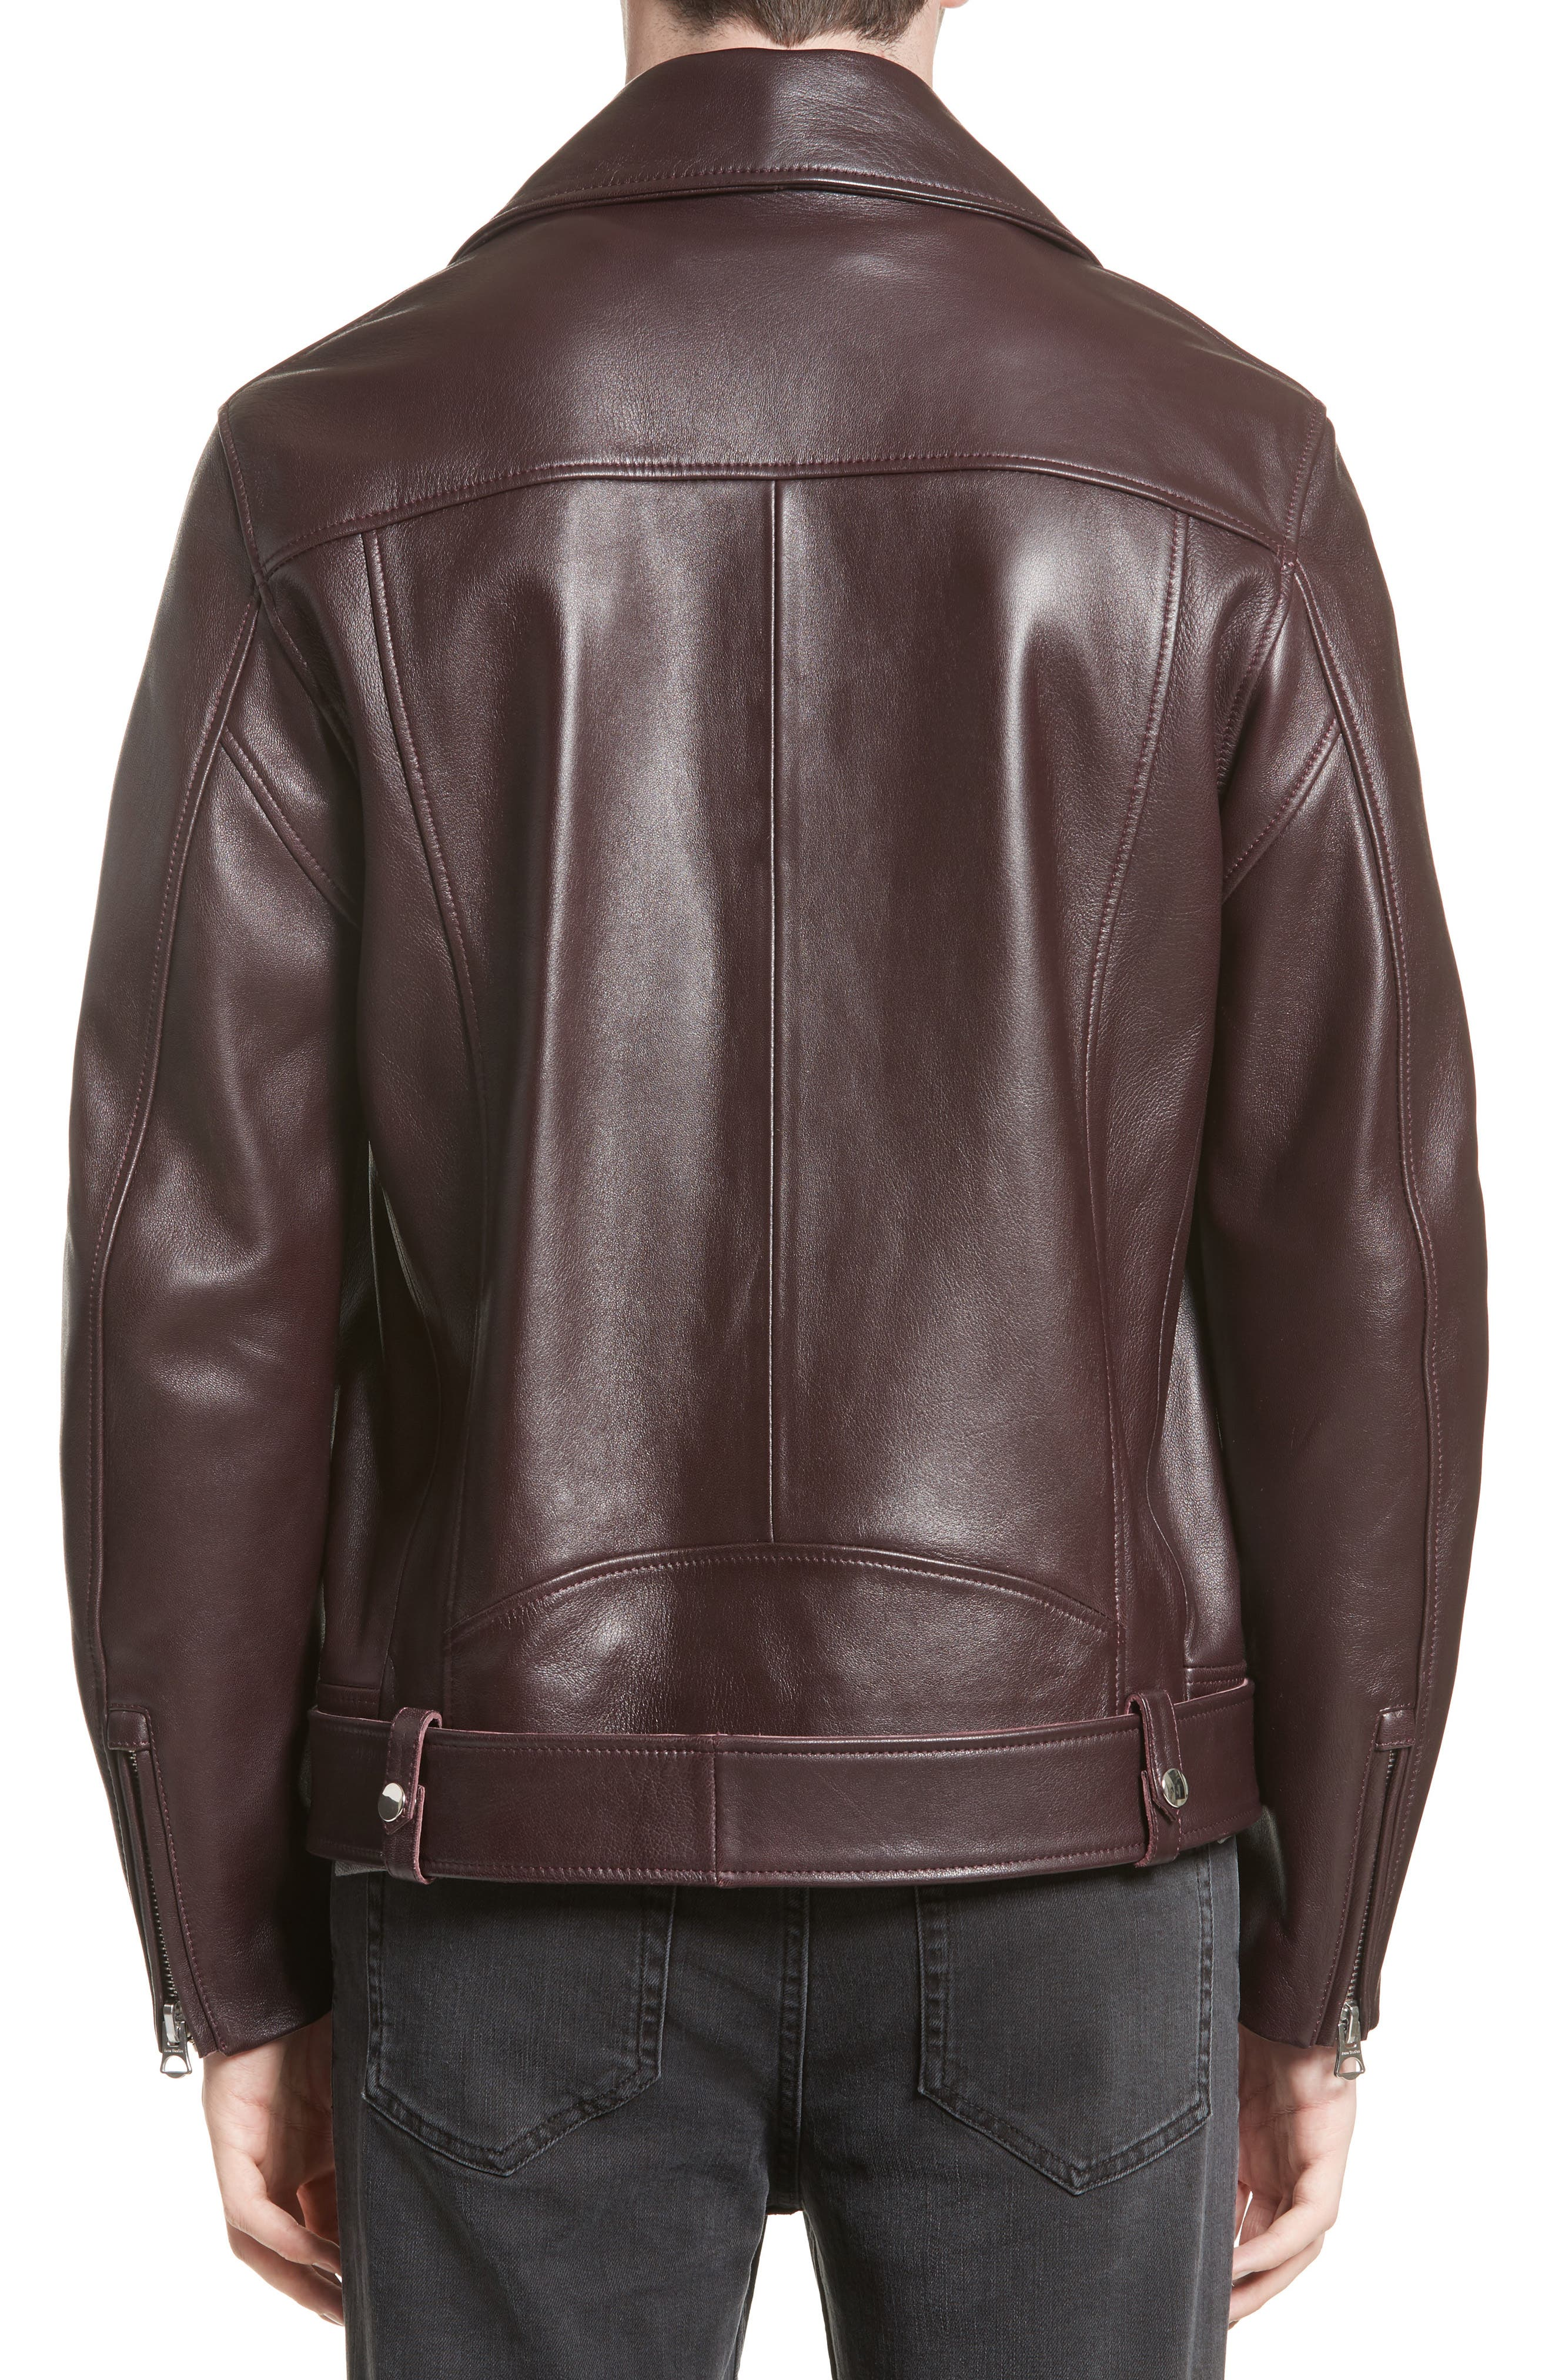 Acne Nate Leather Jacket,                             Alternate thumbnail 2, color,                             Oxblood Red